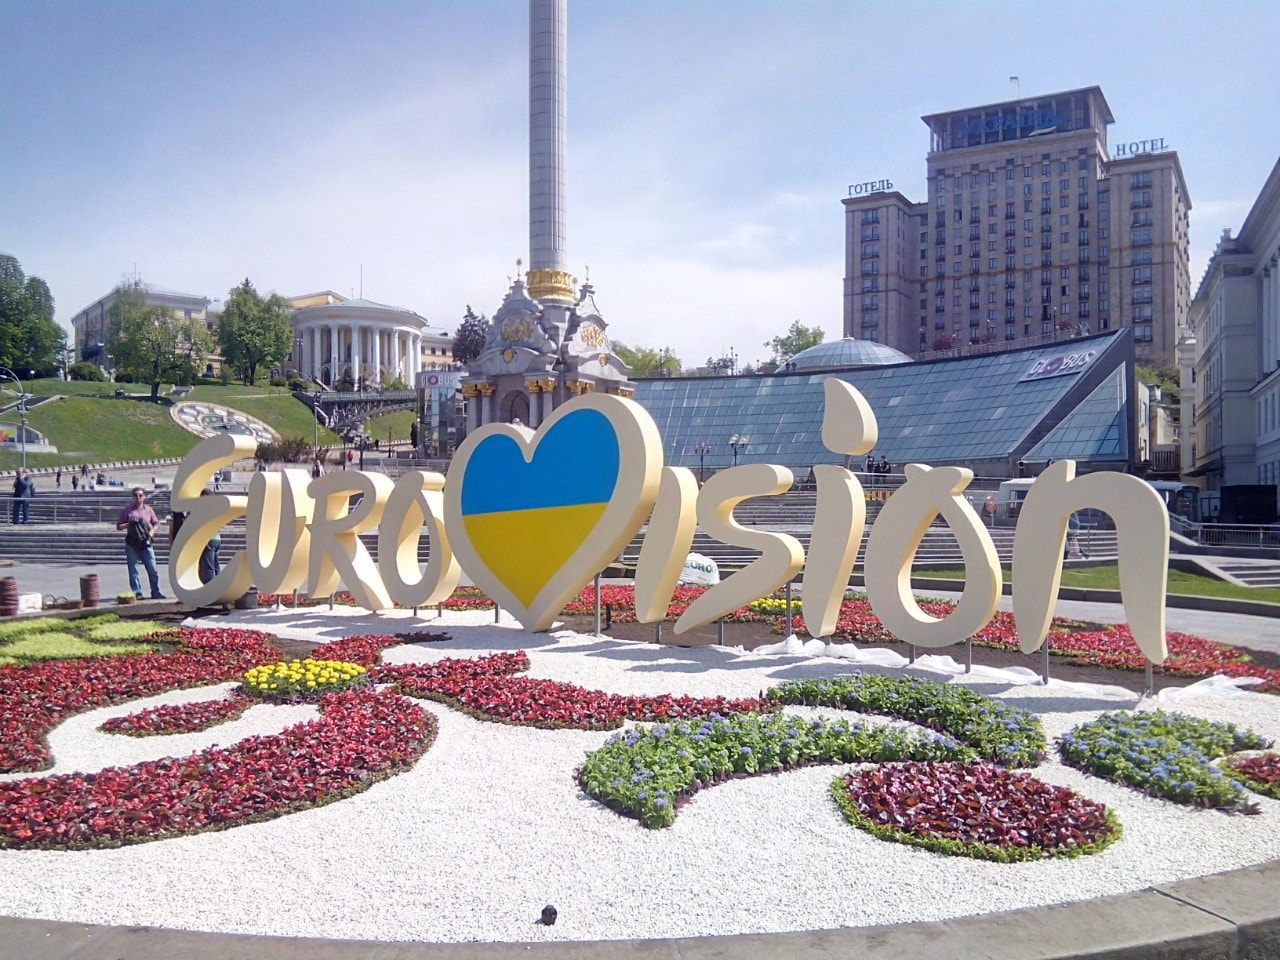 The 2017 Eurovision Song Contest will be held in Kiev, Ukraine. Image: Tohaomg/Wikimedia Commons.